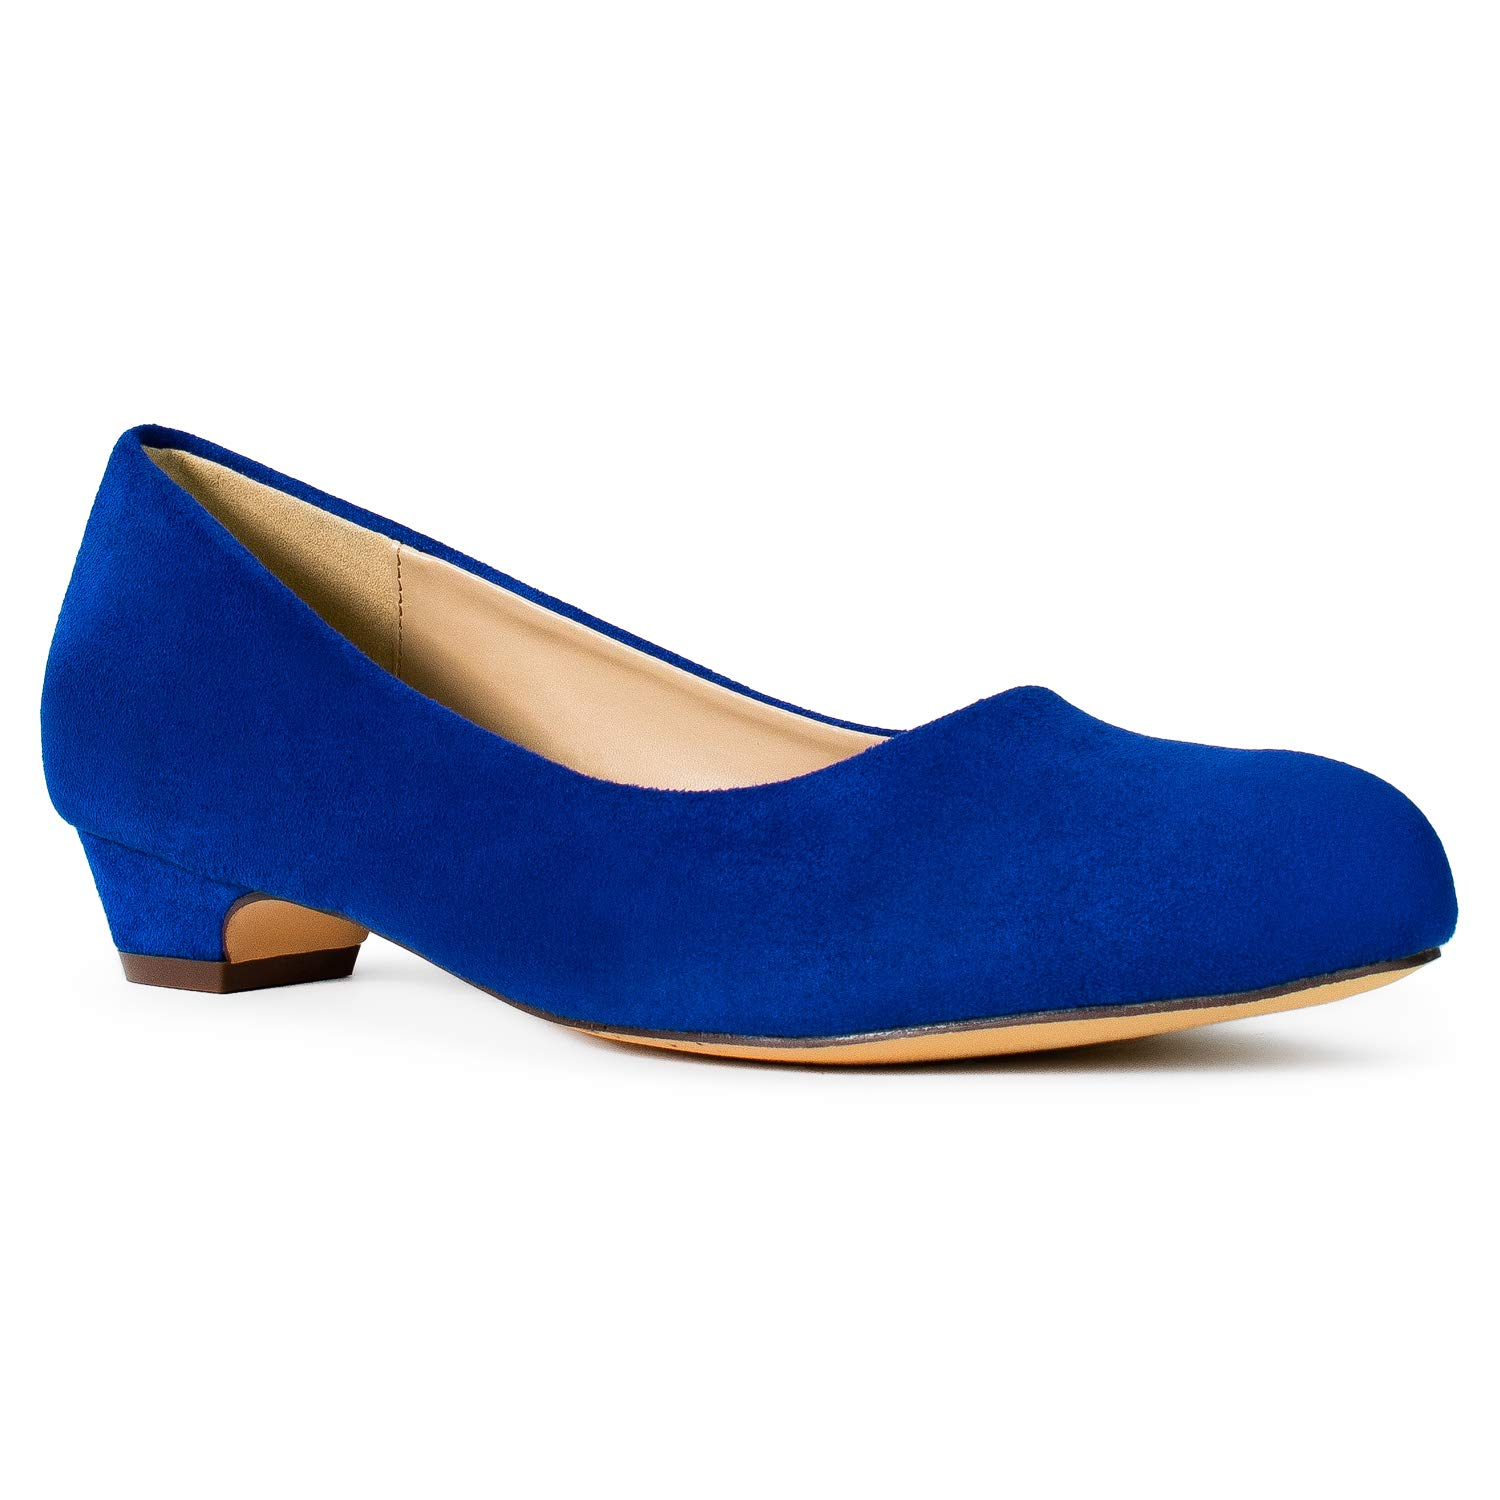 bluee Su (Extra Wide. One Full Size Larger Than Regular Fit) RF ROOM OF FASHION Women's Wide Fit Kitten Low Heel Extra Cushion Pumps Flats (True Wide Width)